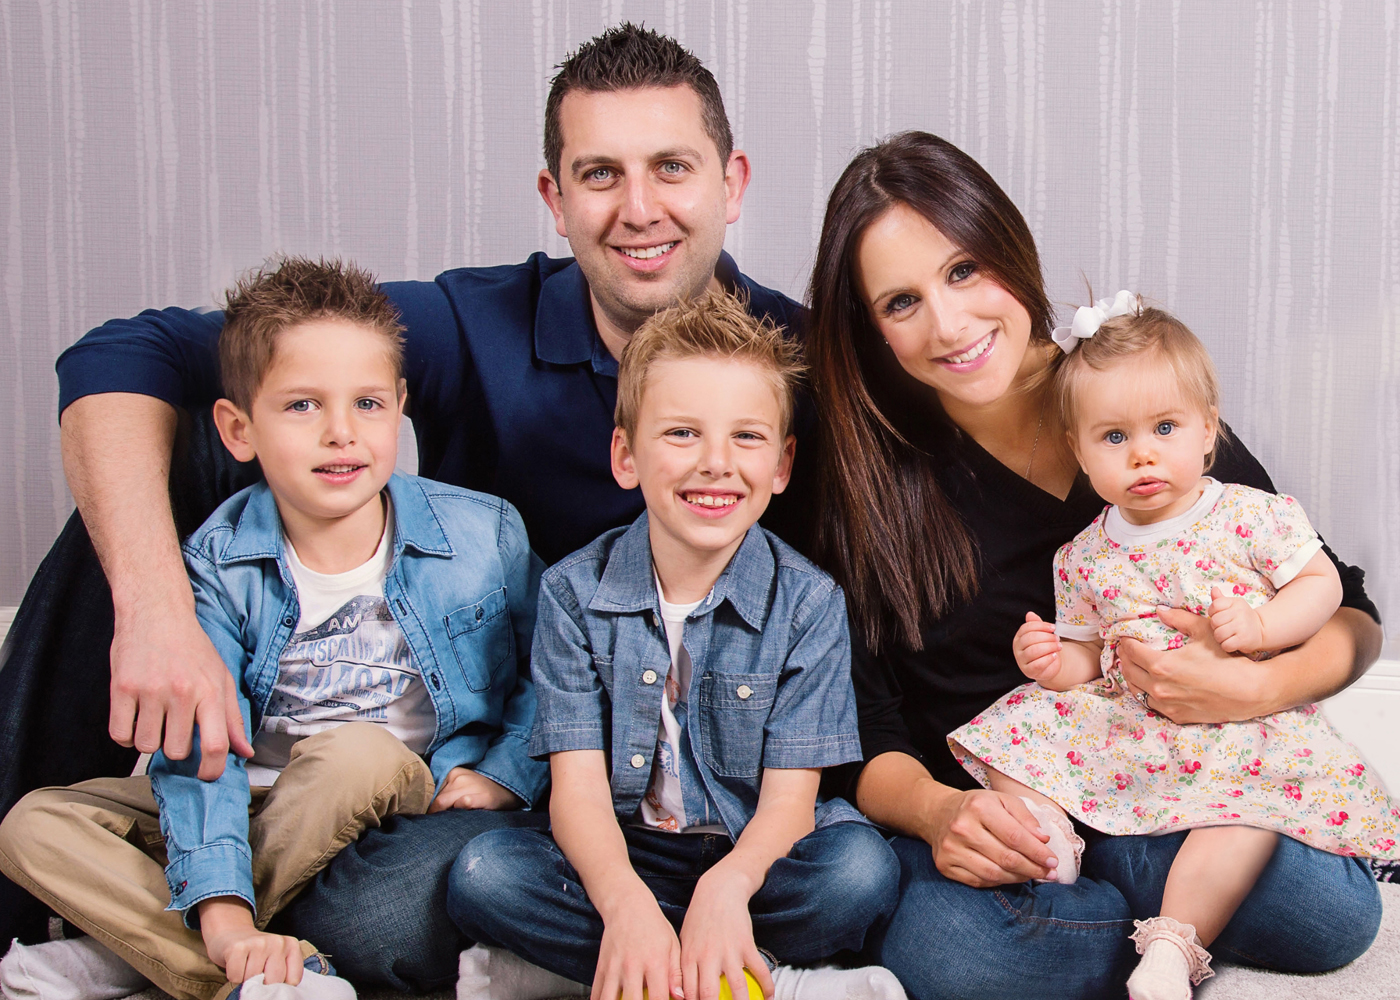 Family Photo Shoot Weekend Family Photo Shoot In North London By Mona Naem Photography